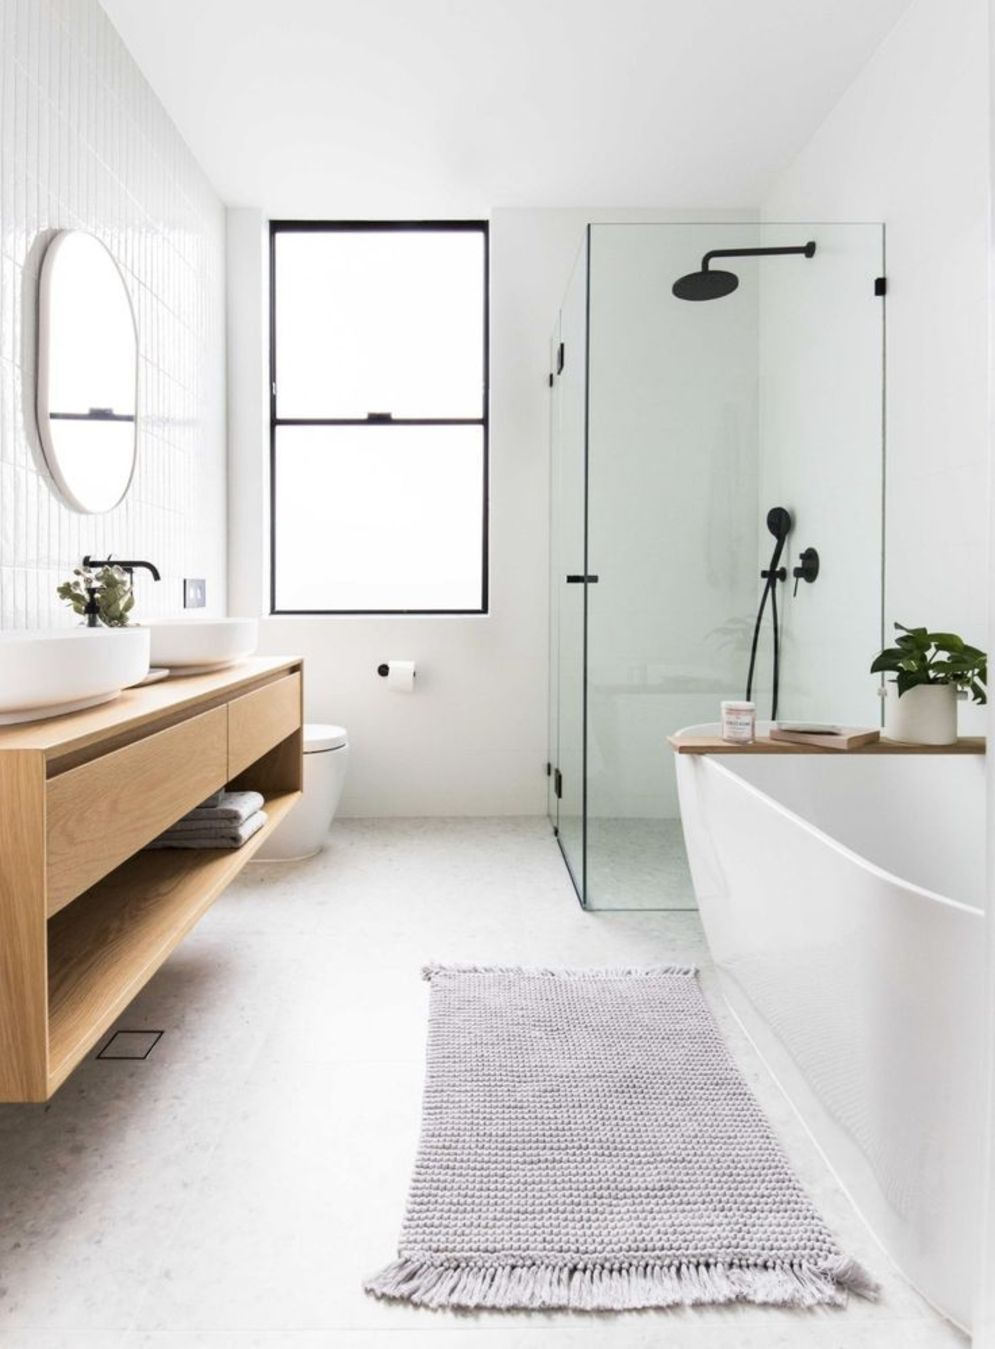 Most savvy bathroom designs with elegant wood finish to give more natural feel Image 12